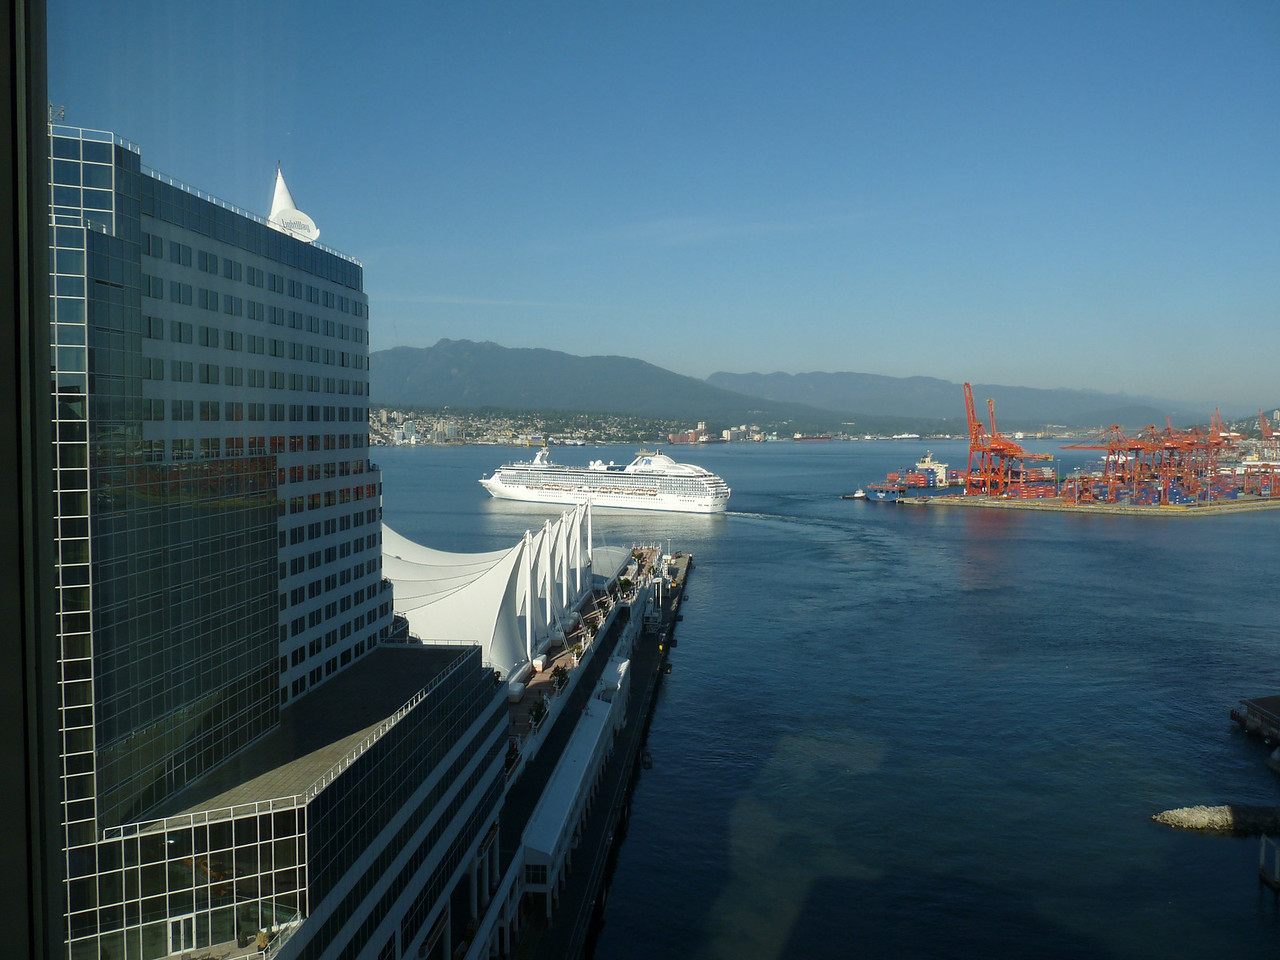 view from our hotel window (looks a bit different in the early evening than it did this morning at dawn, eh?)<br /> <br /> I'm not sure I ever mentioned:  our hotel was the very nice Fairmont Waterfront.